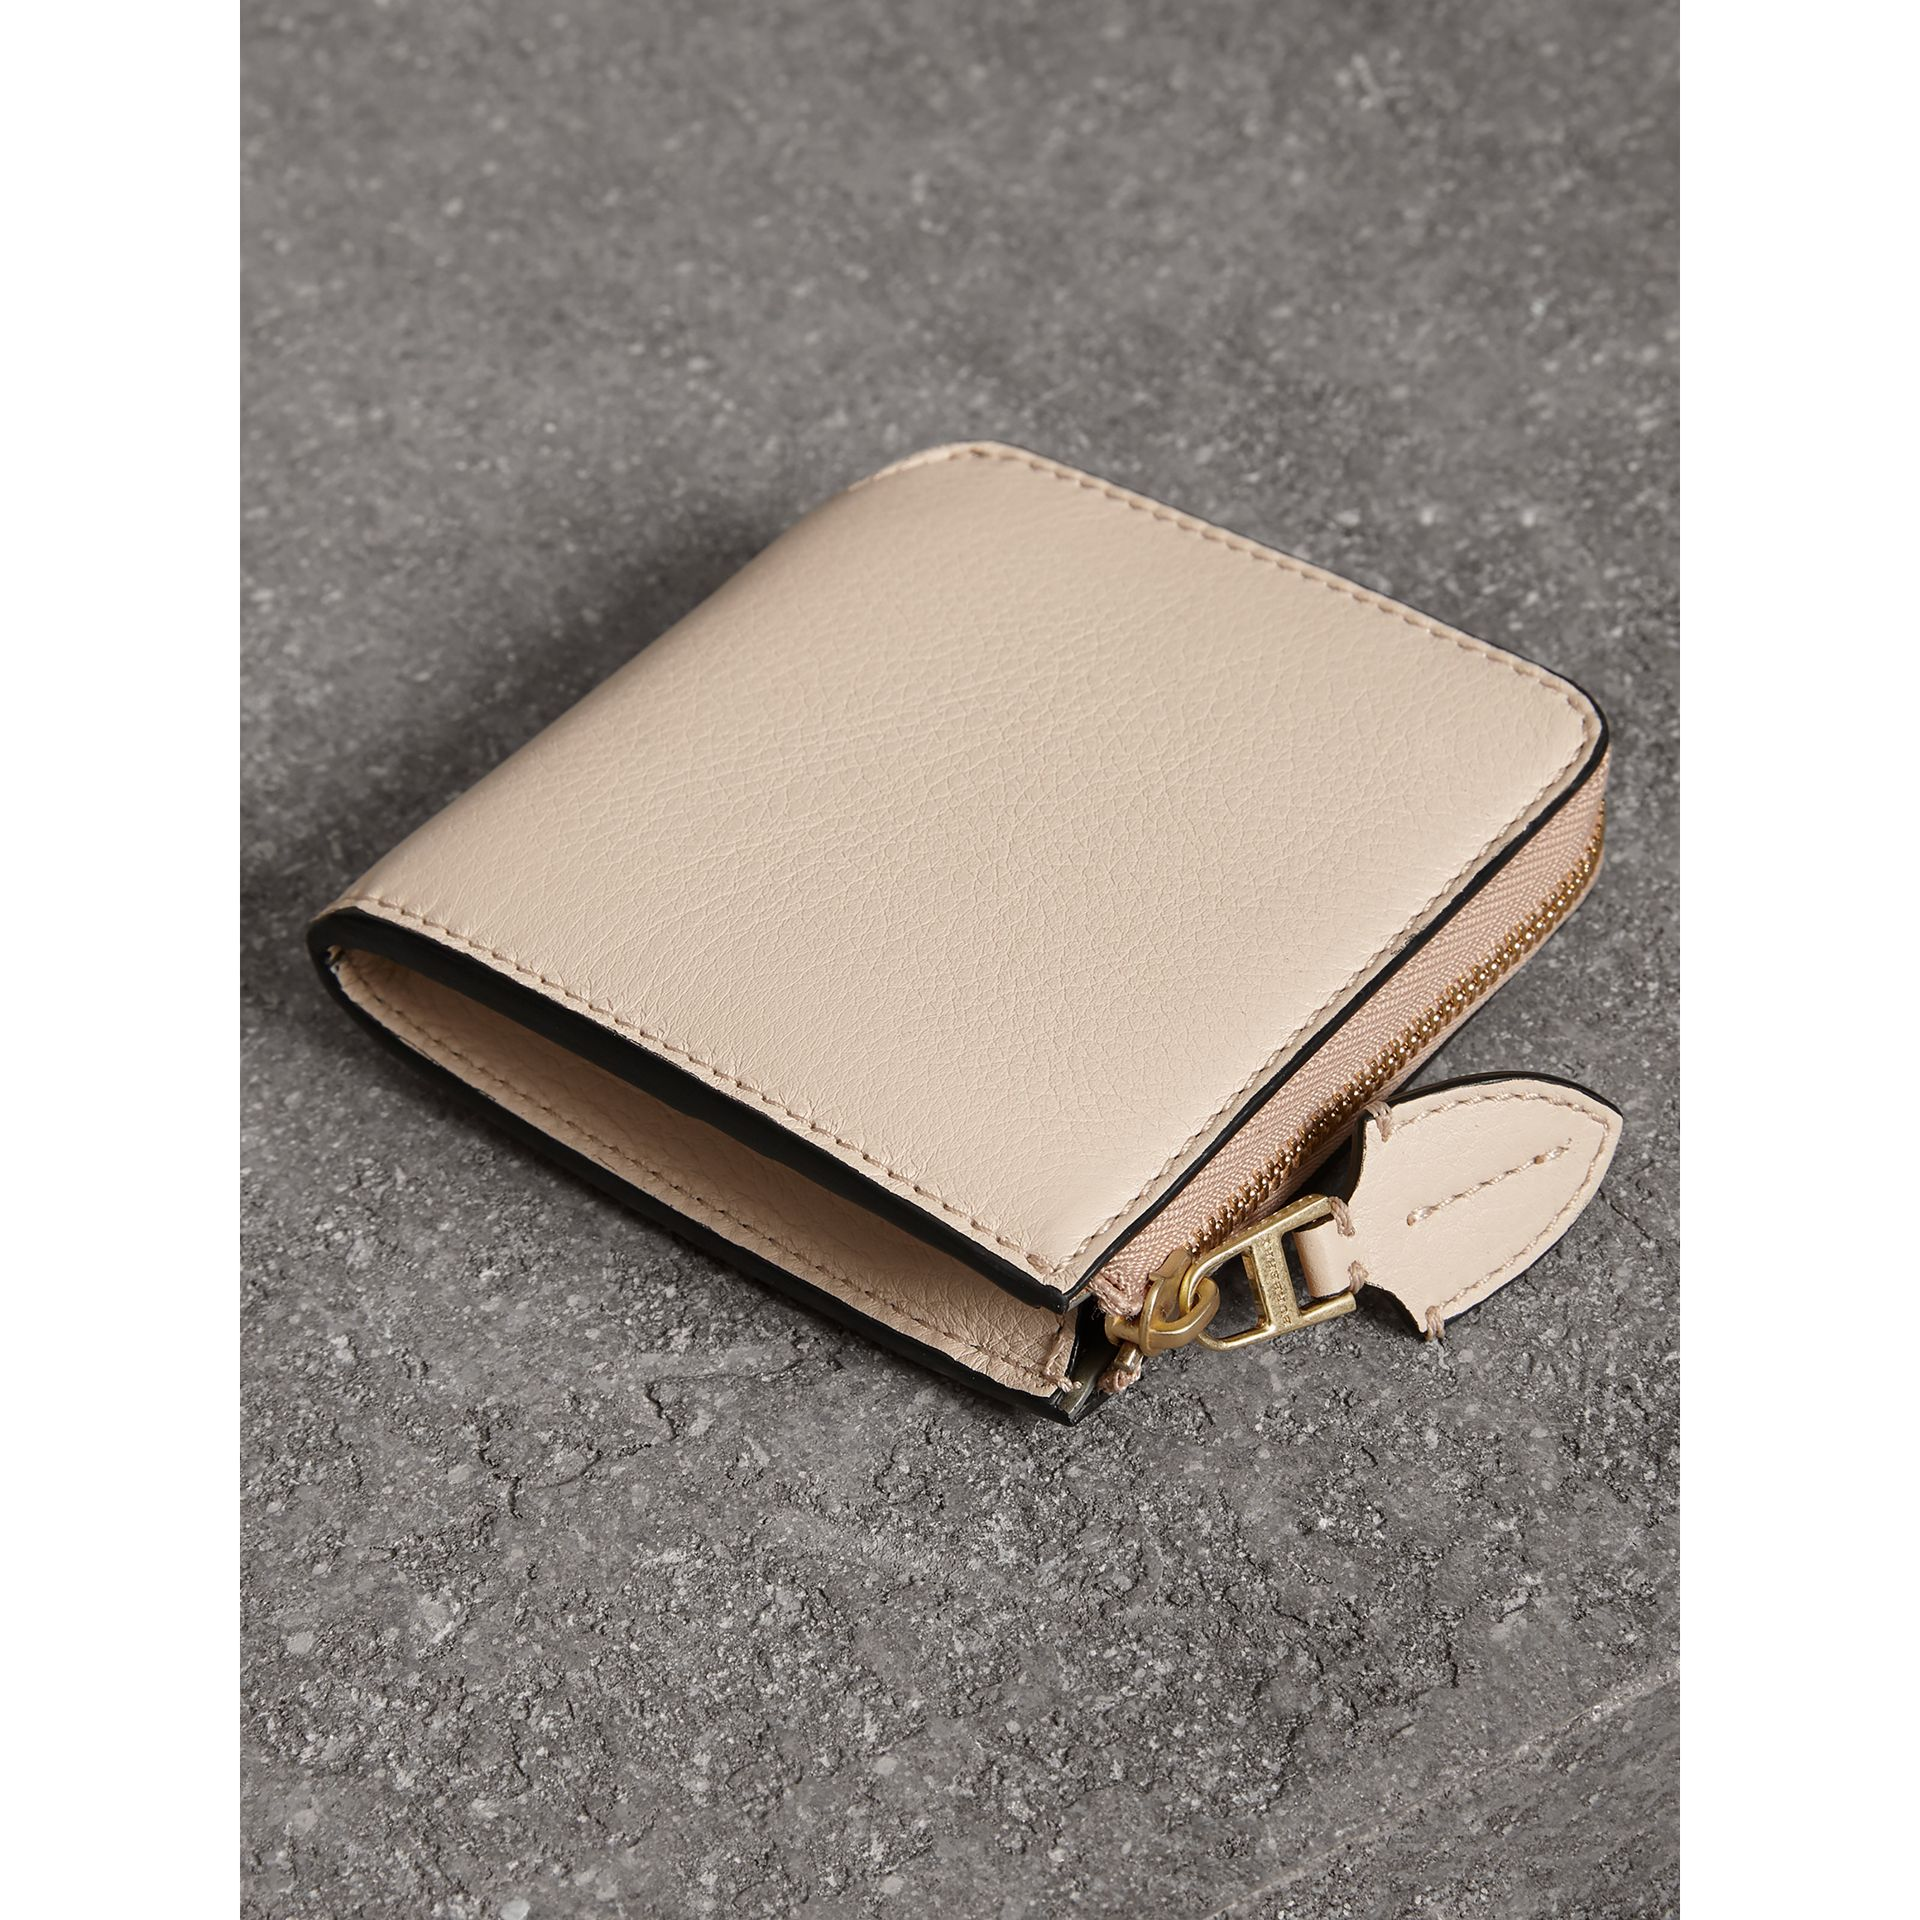 Grainy Leather Square Ziparound Wallet in Limestone - Women | Burberry United Kingdom - gallery image 2